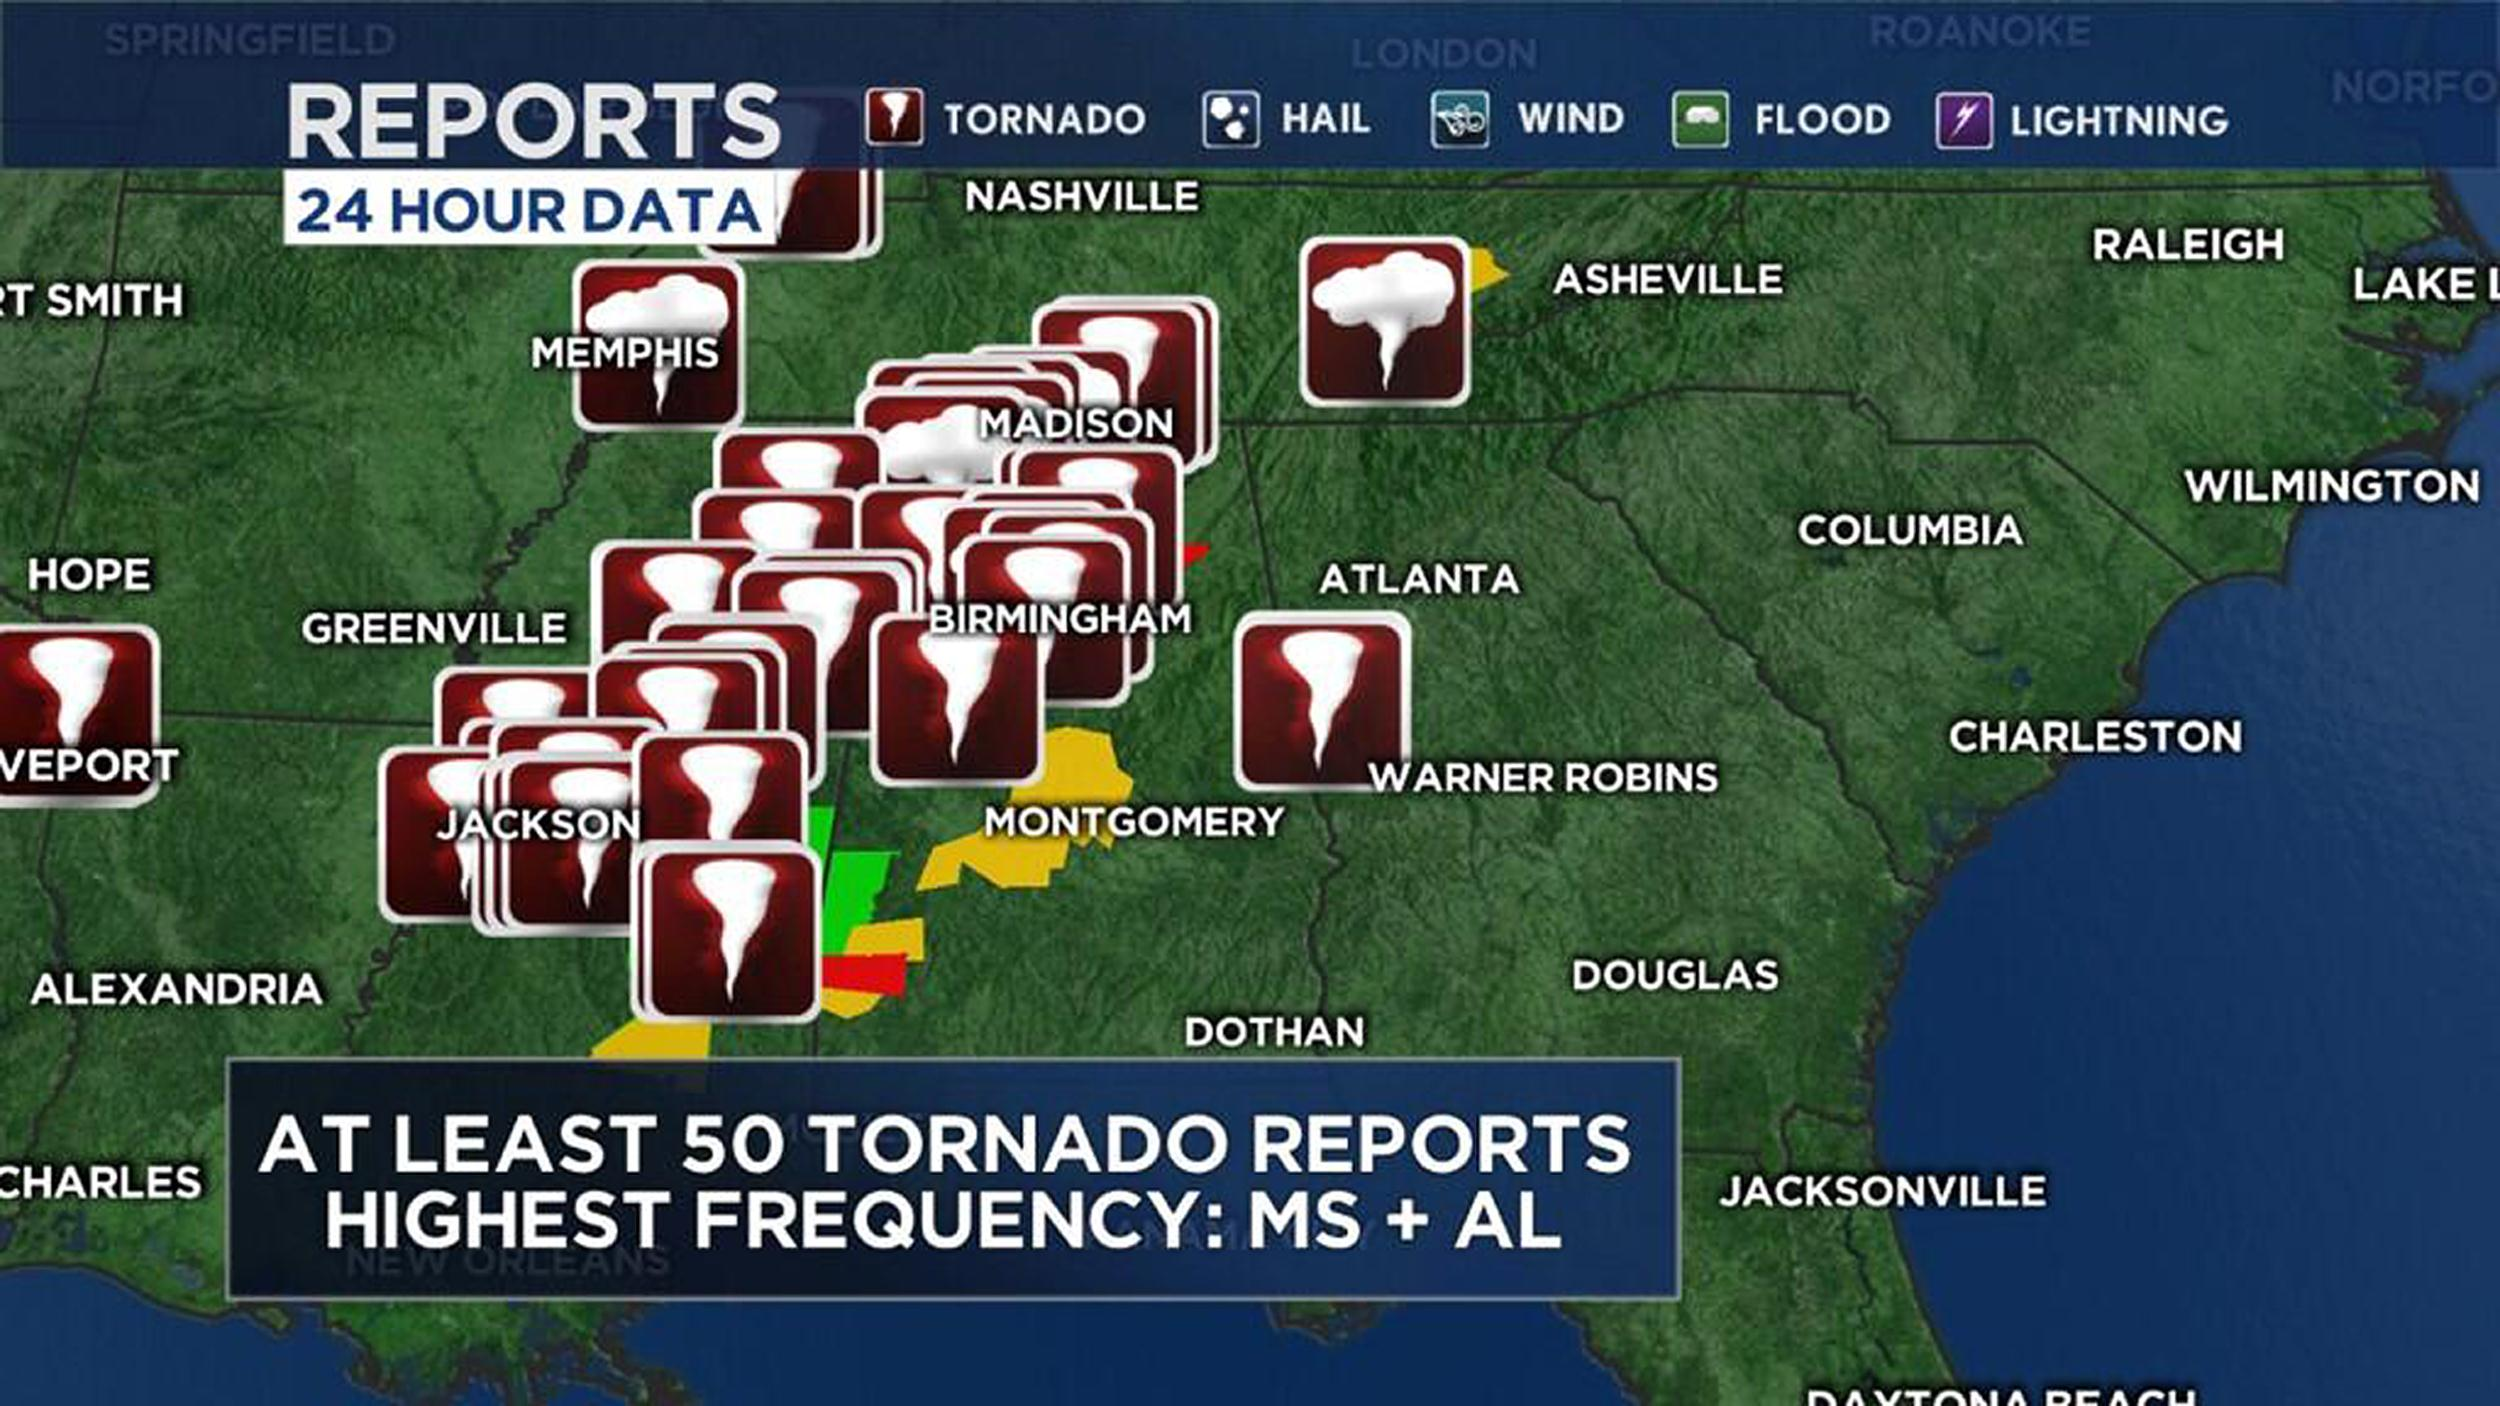 The storm front continuing to rake over the Southeast has produced at least 50 tornado reports in 24 hours.